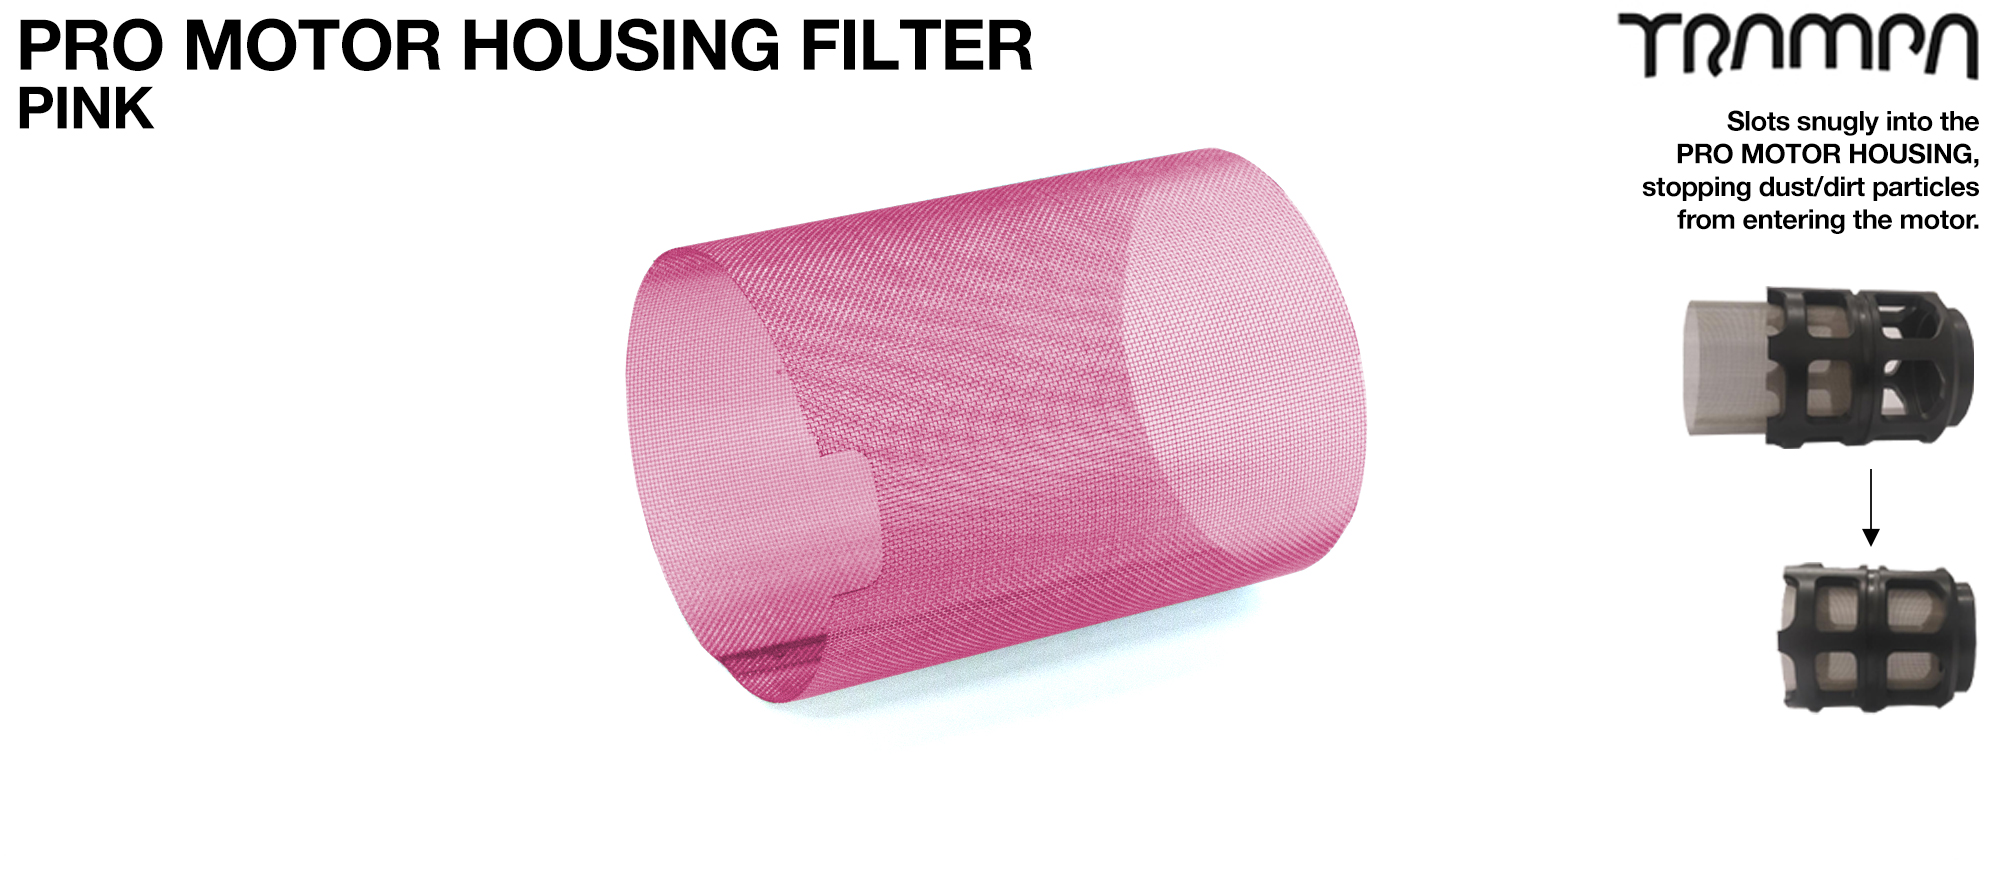 MkII Motor Protection Cover MESH FILTER - PINK